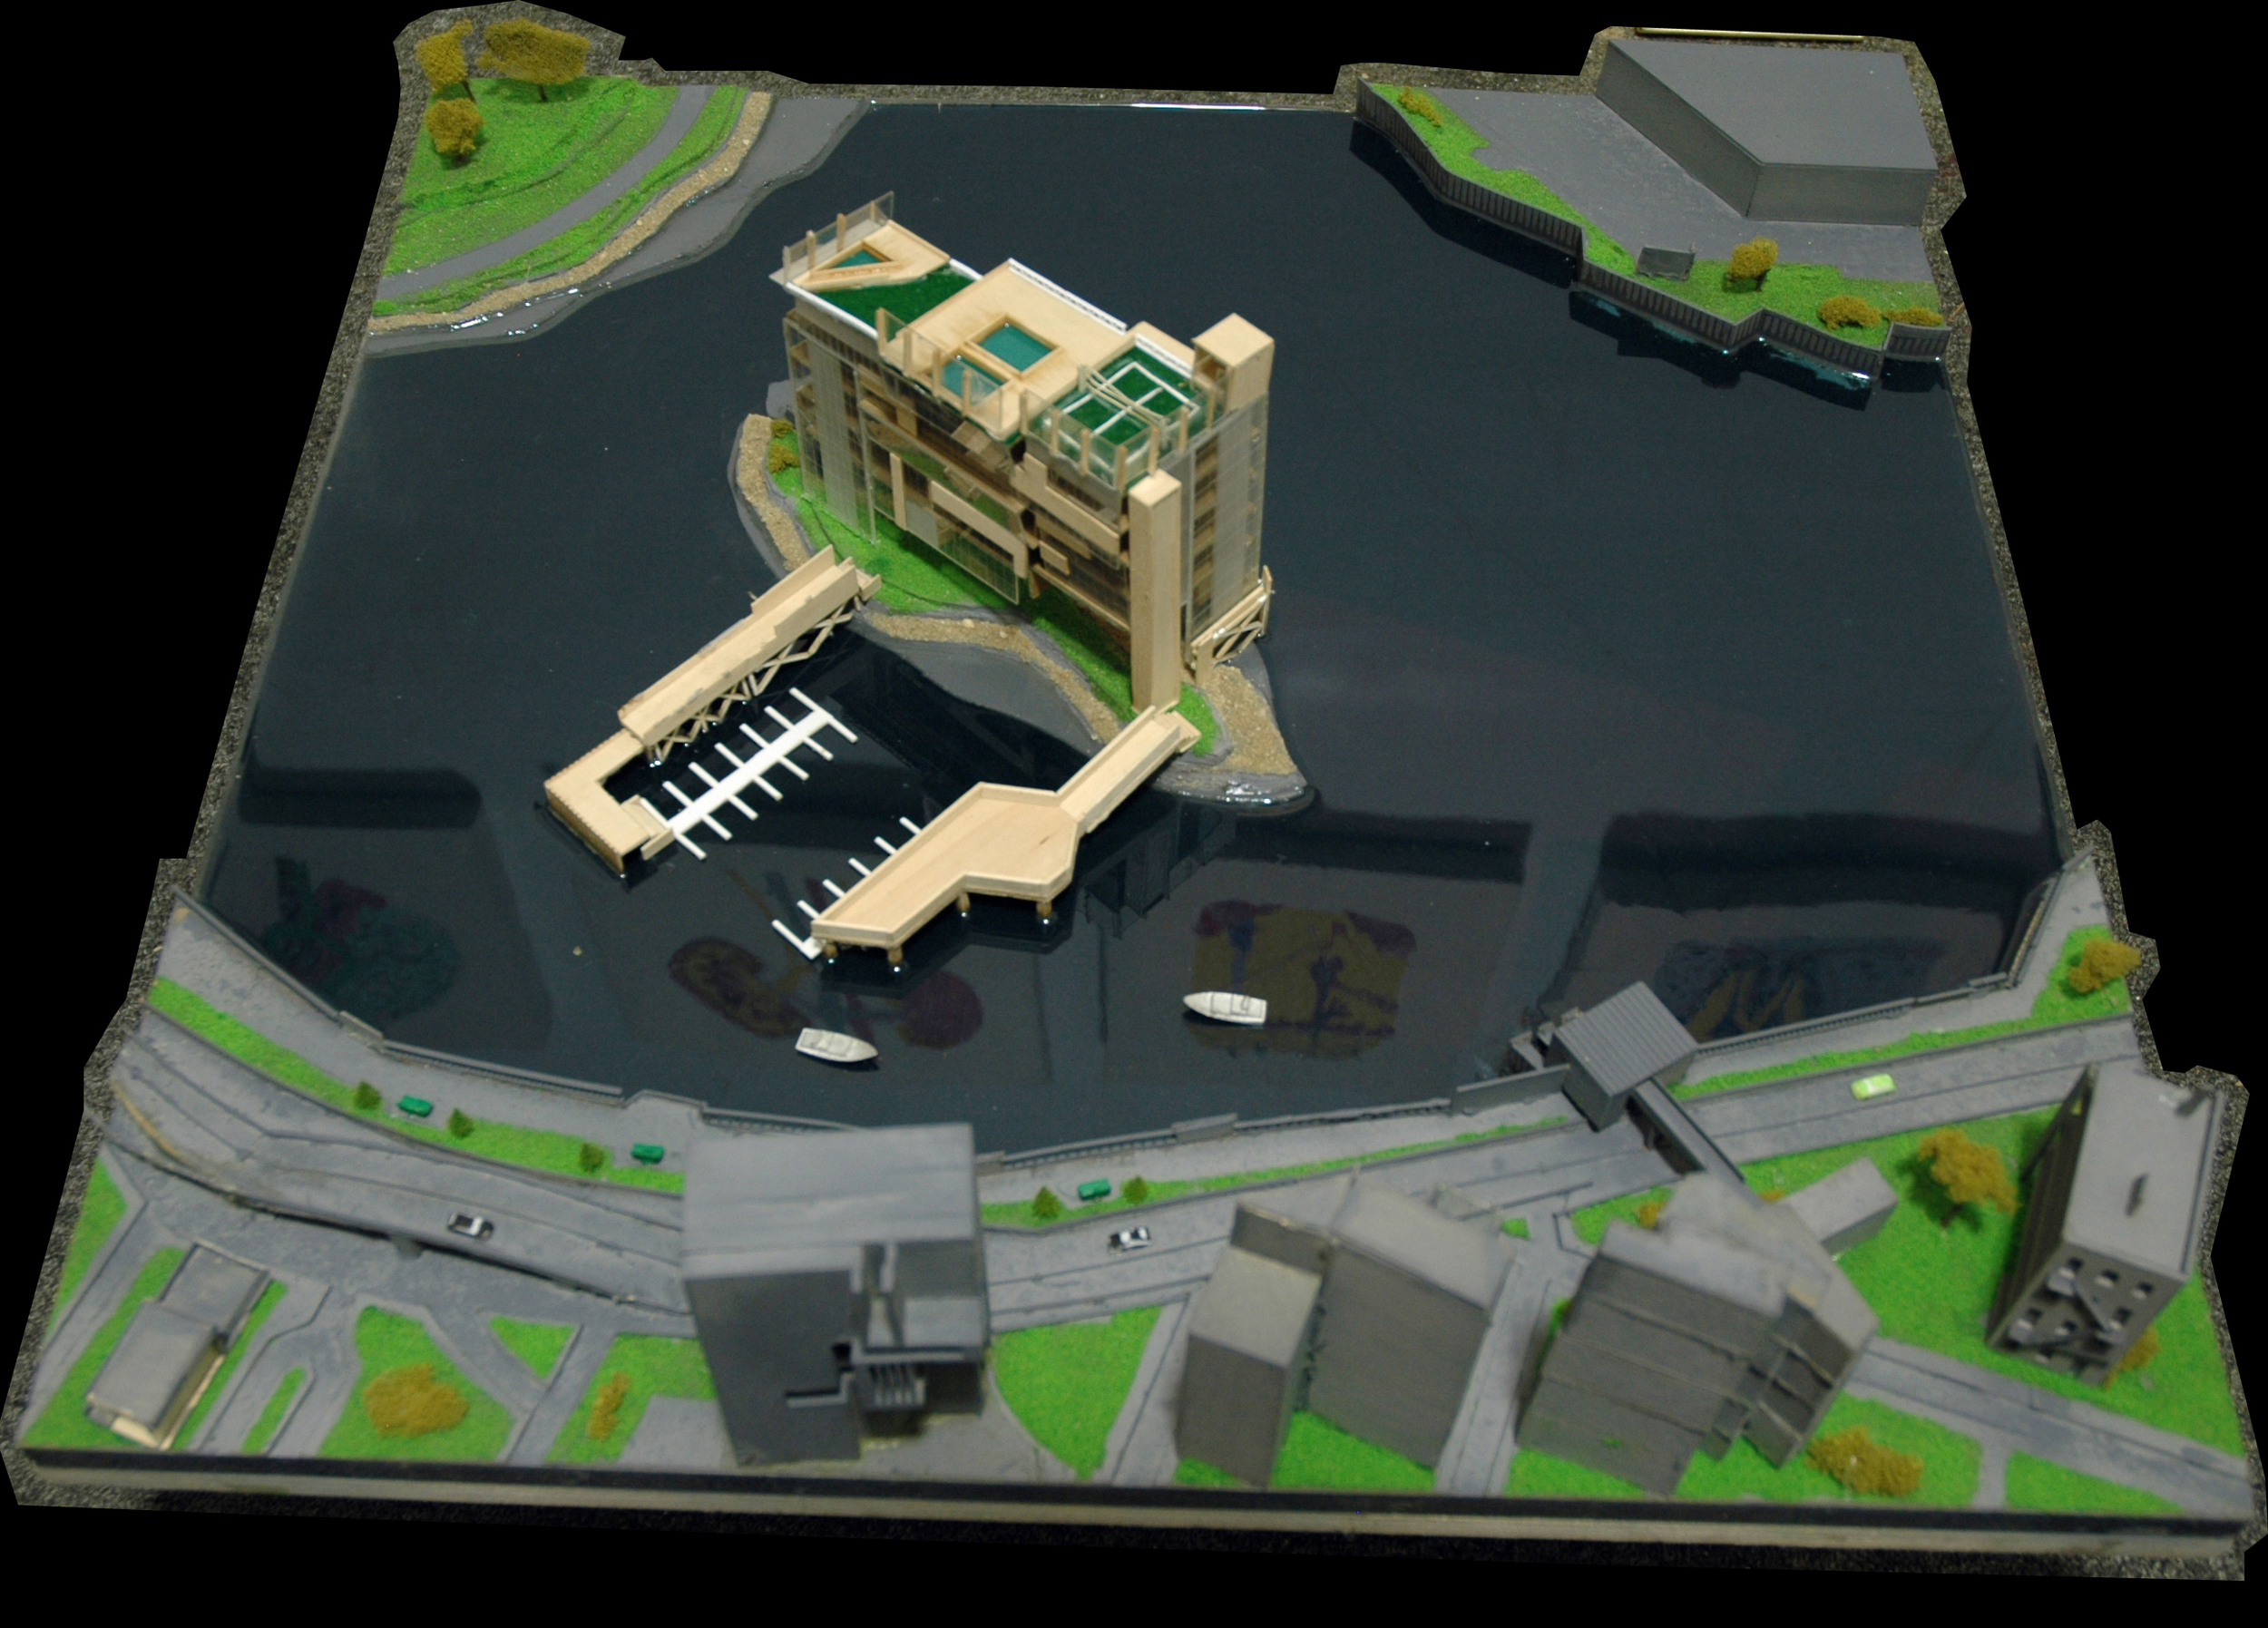 05_HR_Architectural_Model_of_a_Proposed_Casino_on_Mill_Rock_Island_2005.jpg